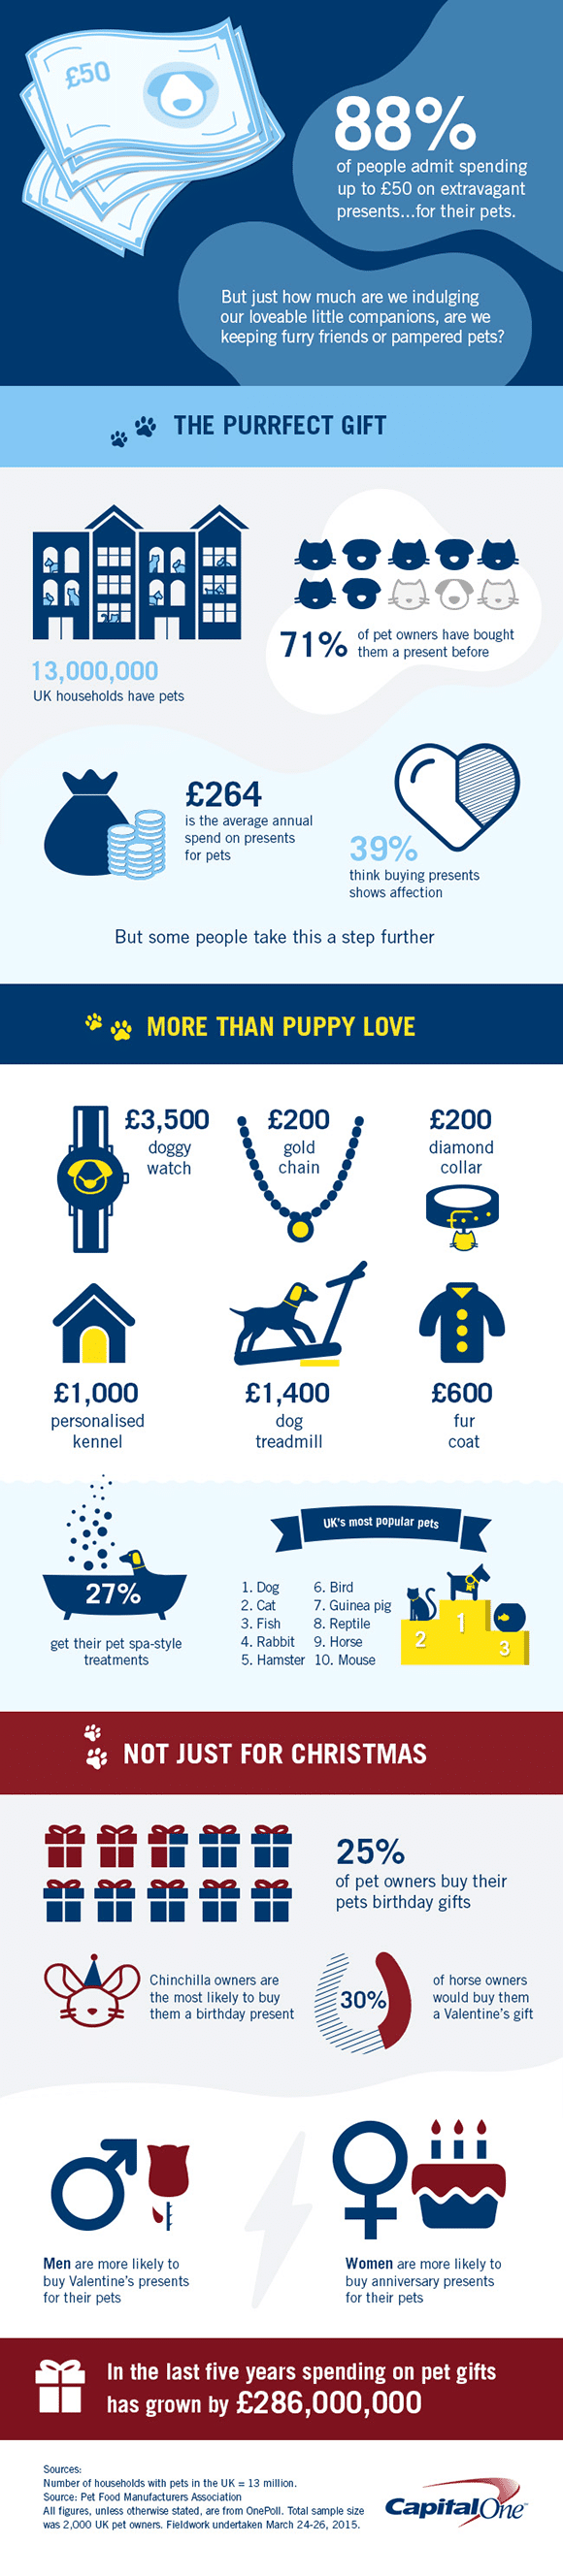 Pampered Pets Luxury Gifts Infographic